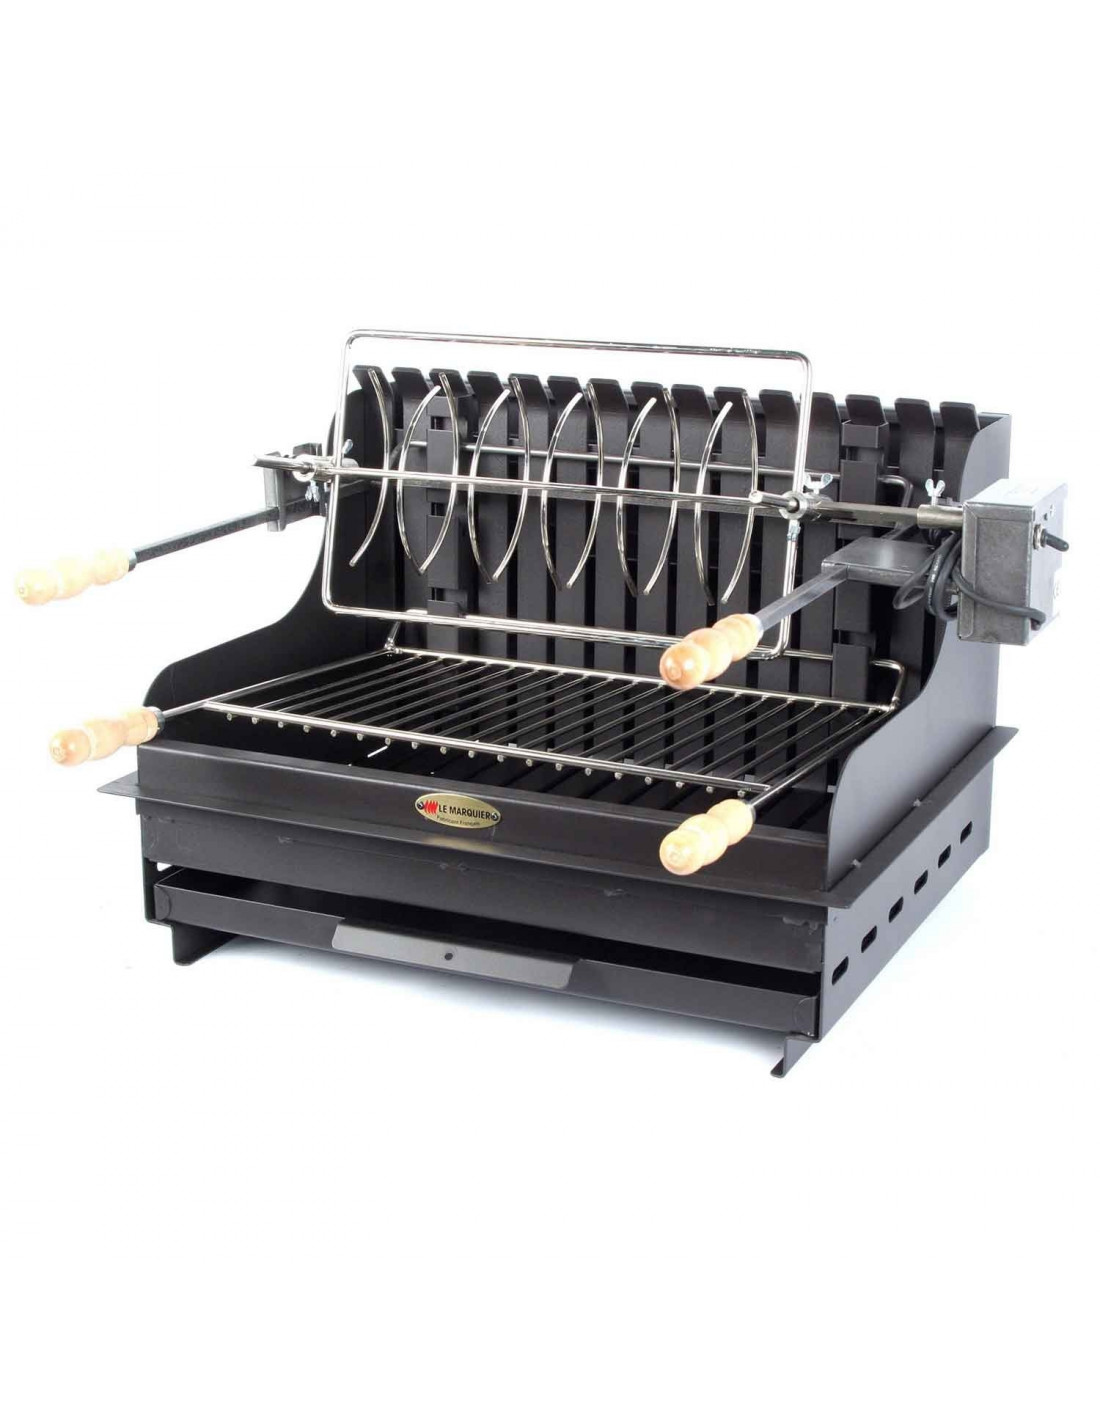 Barbecue charbon encastrable le marquier mendy for Fabrication barbecue exterieur